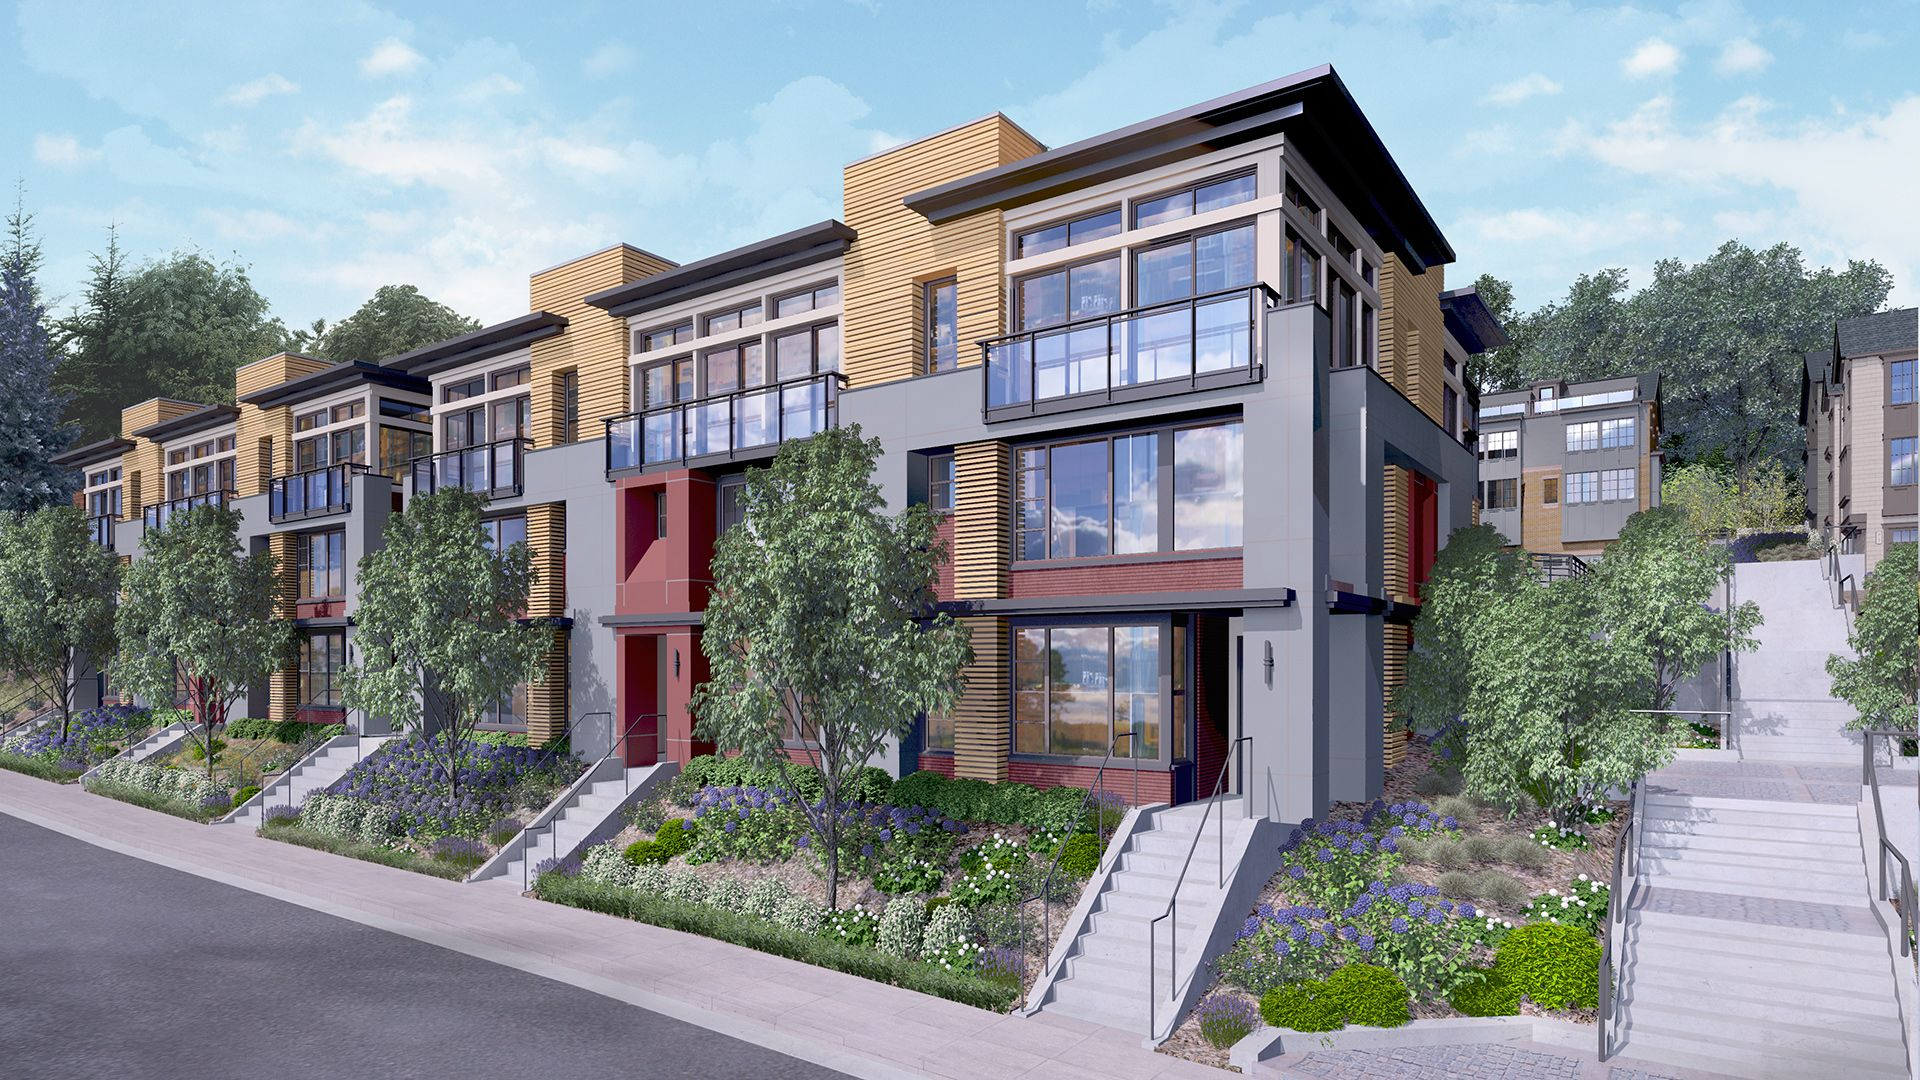 Seattle Wa New Construction Homes Mcgraw Square At Queen Anne Townhouse Urban Living Toll Brothers